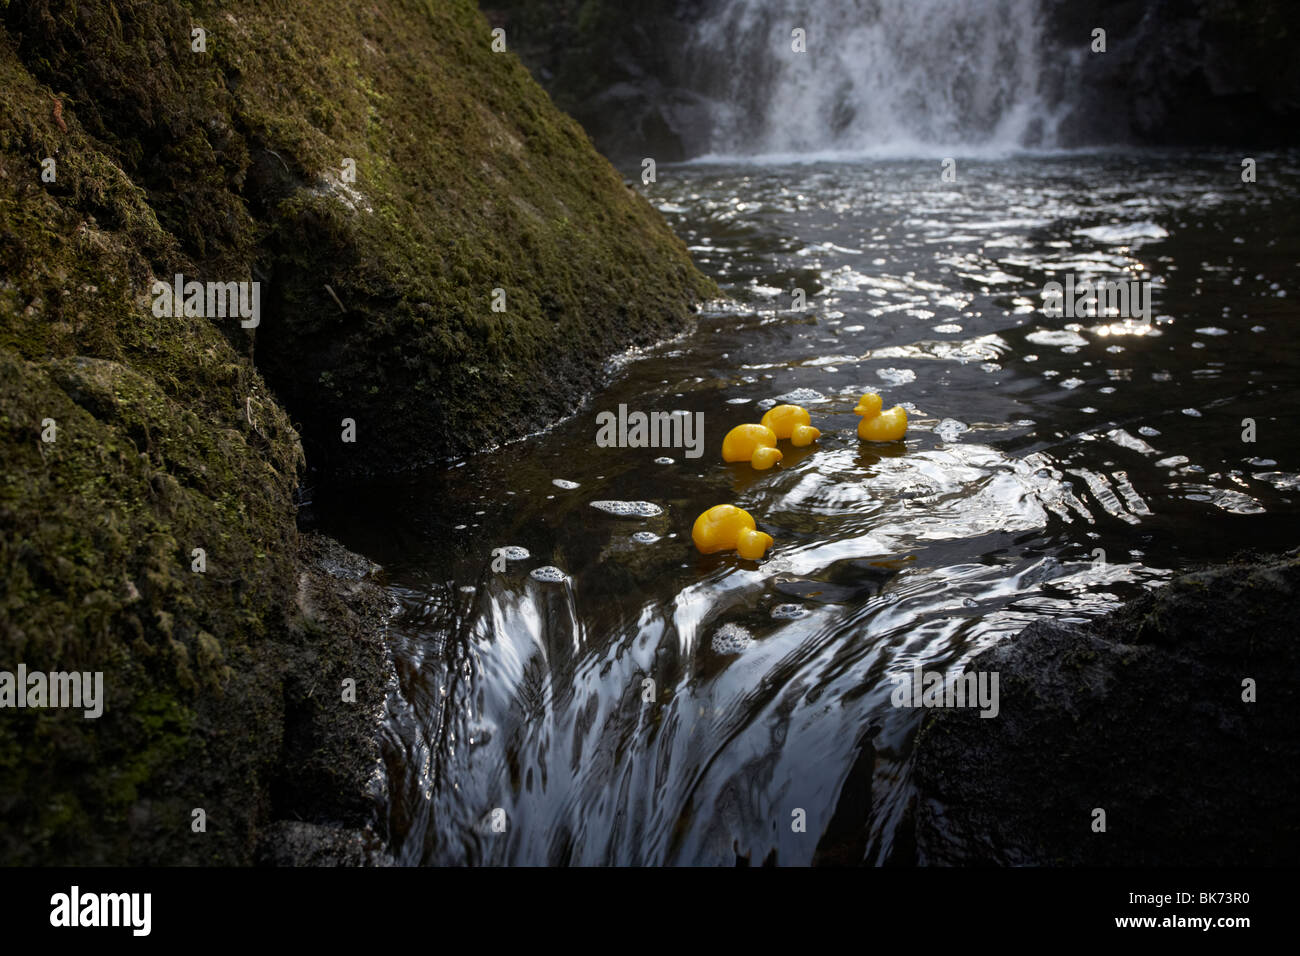 yellow plastic toy ducks on a fast flowing river going over rocks in the uk Stock Photo